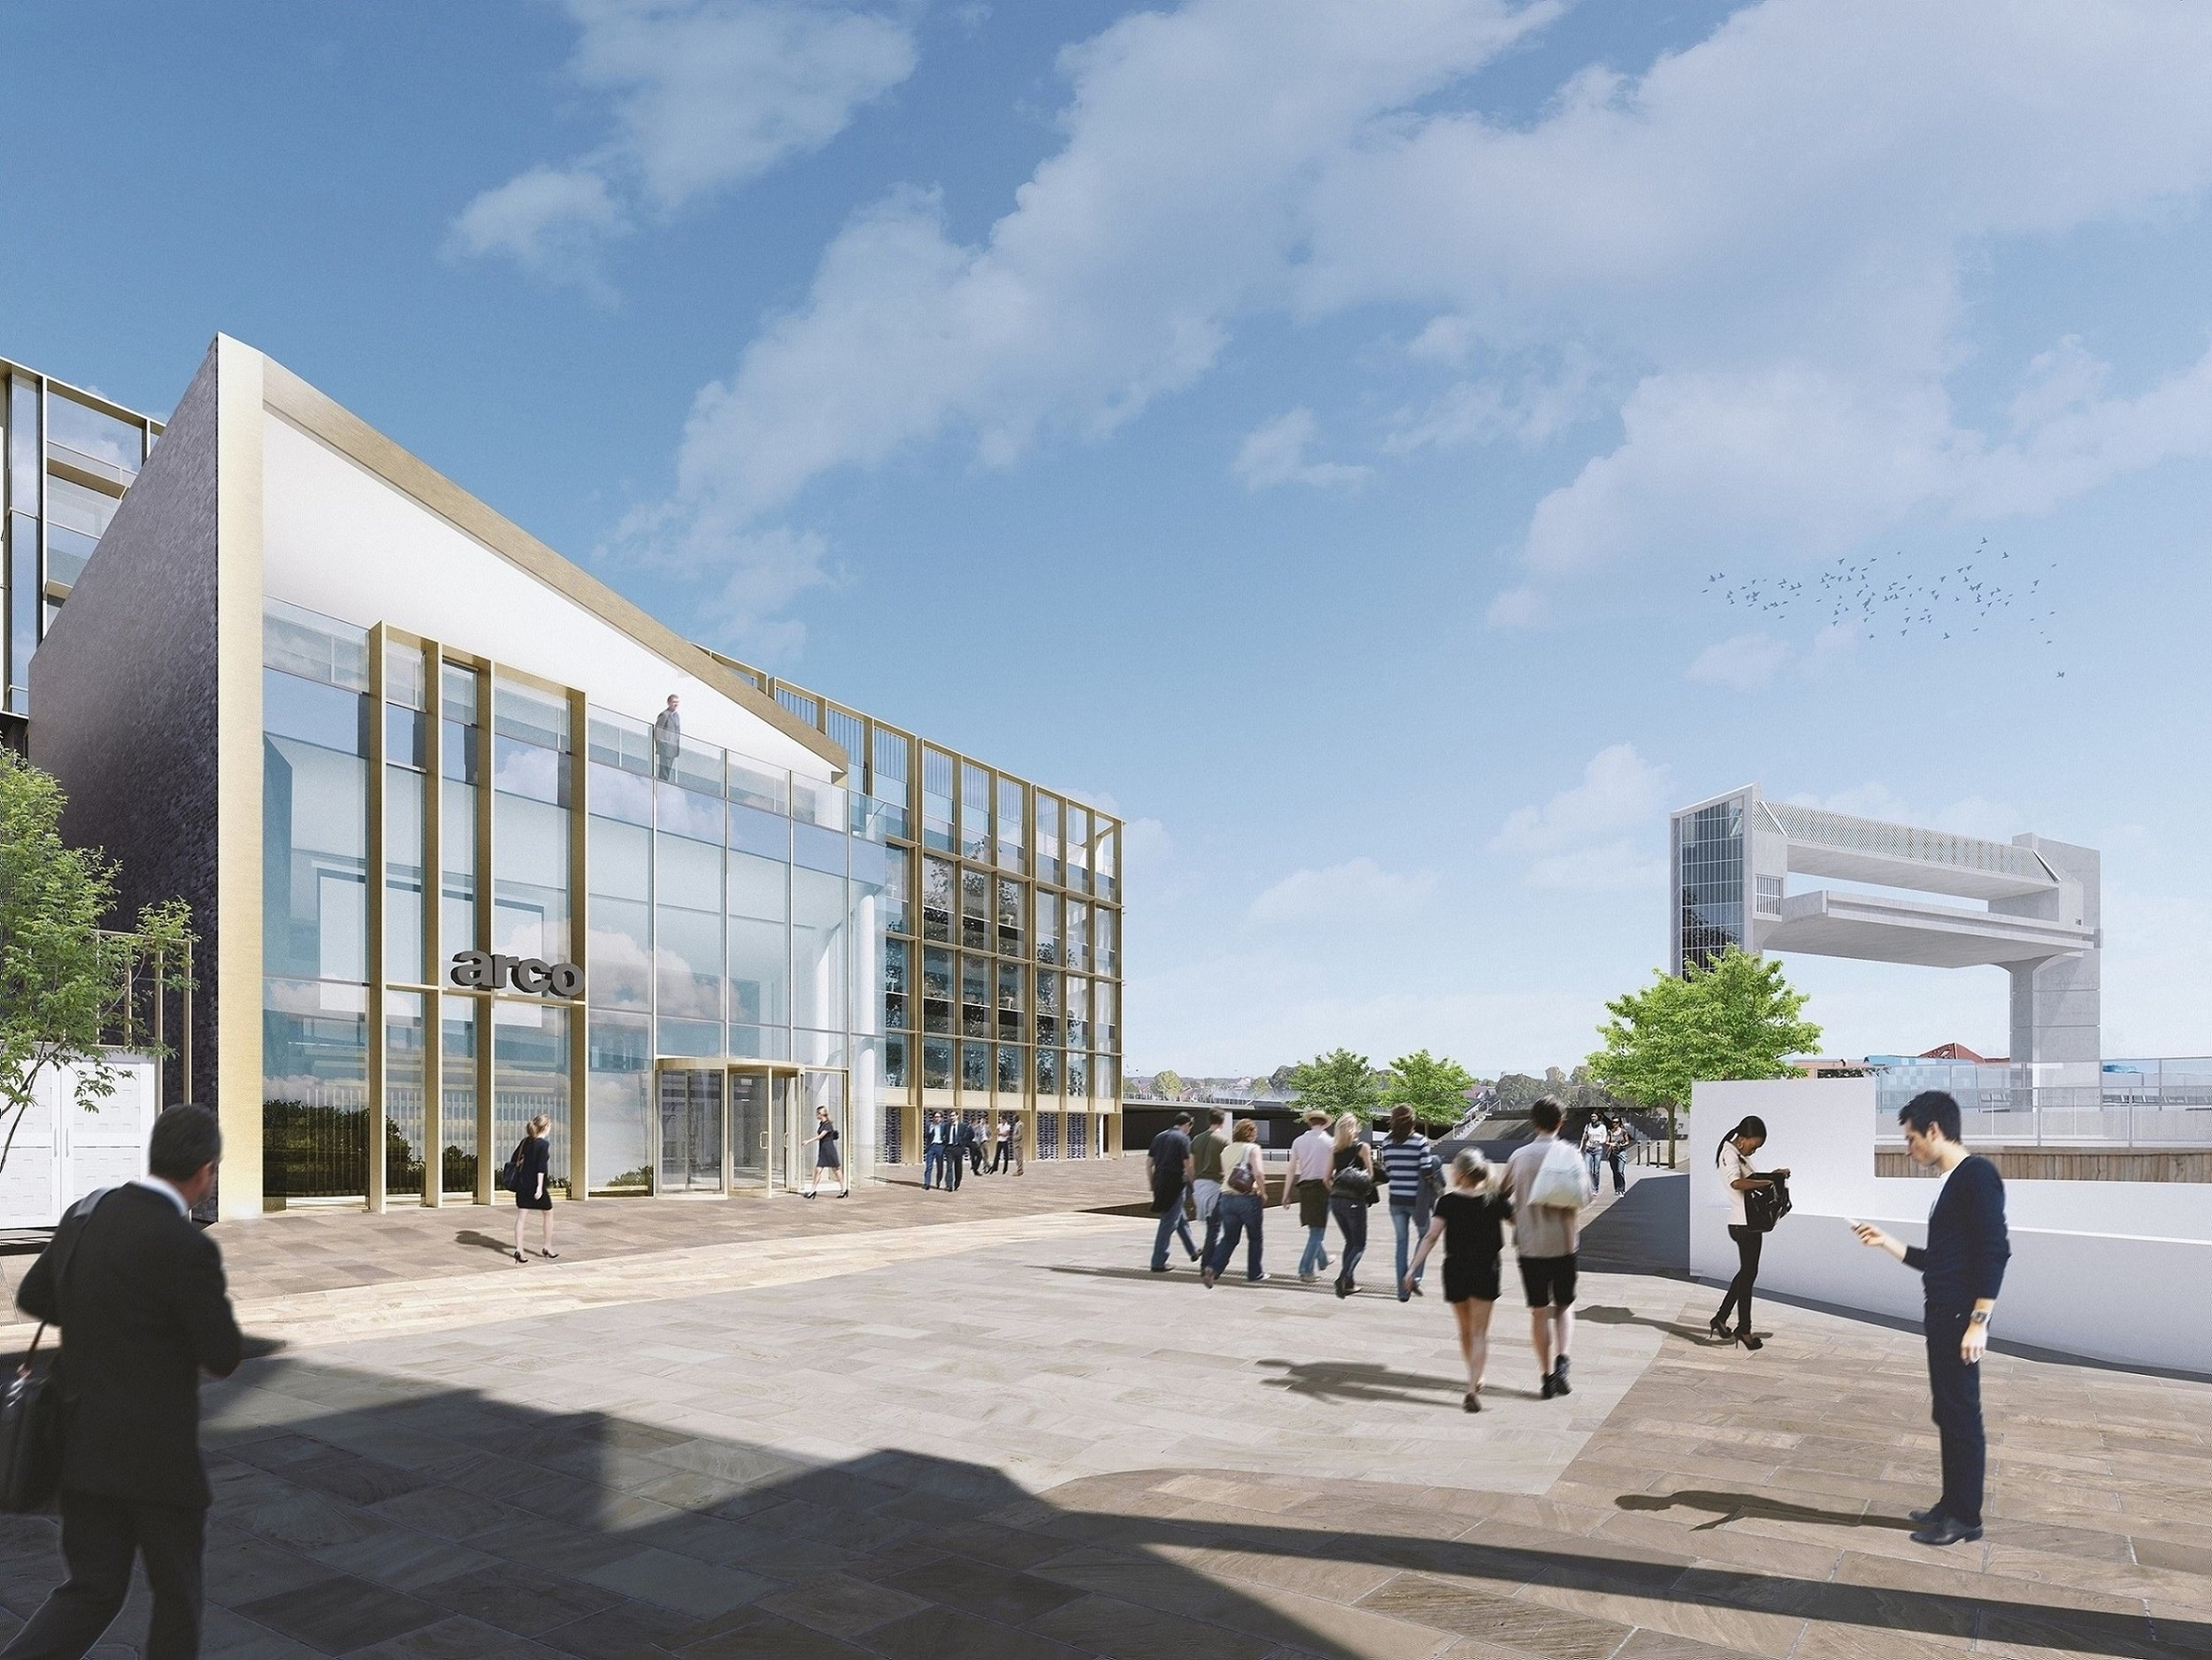 A computer-generated image of the new head office building for Arco, which will have views of the River Hull, The Deep tourist attraction and the landmark Hull Tidal Barrier. The offices are part of a wider development approved by Hull City Council's Planning Committee.